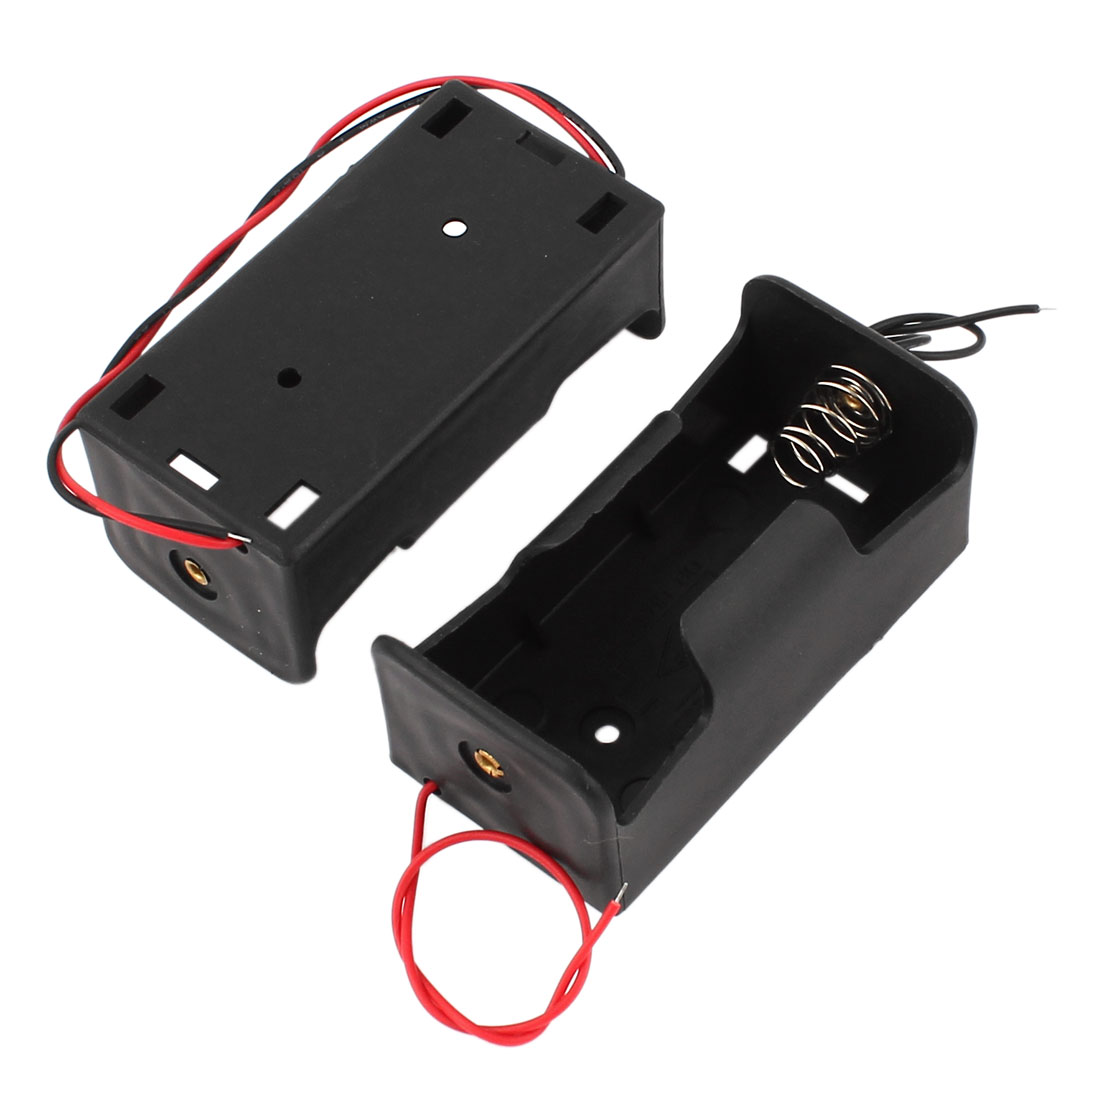 2pcs Flat Tip 1.5V Battery Holder Case Box Holder for 1 x D Battery